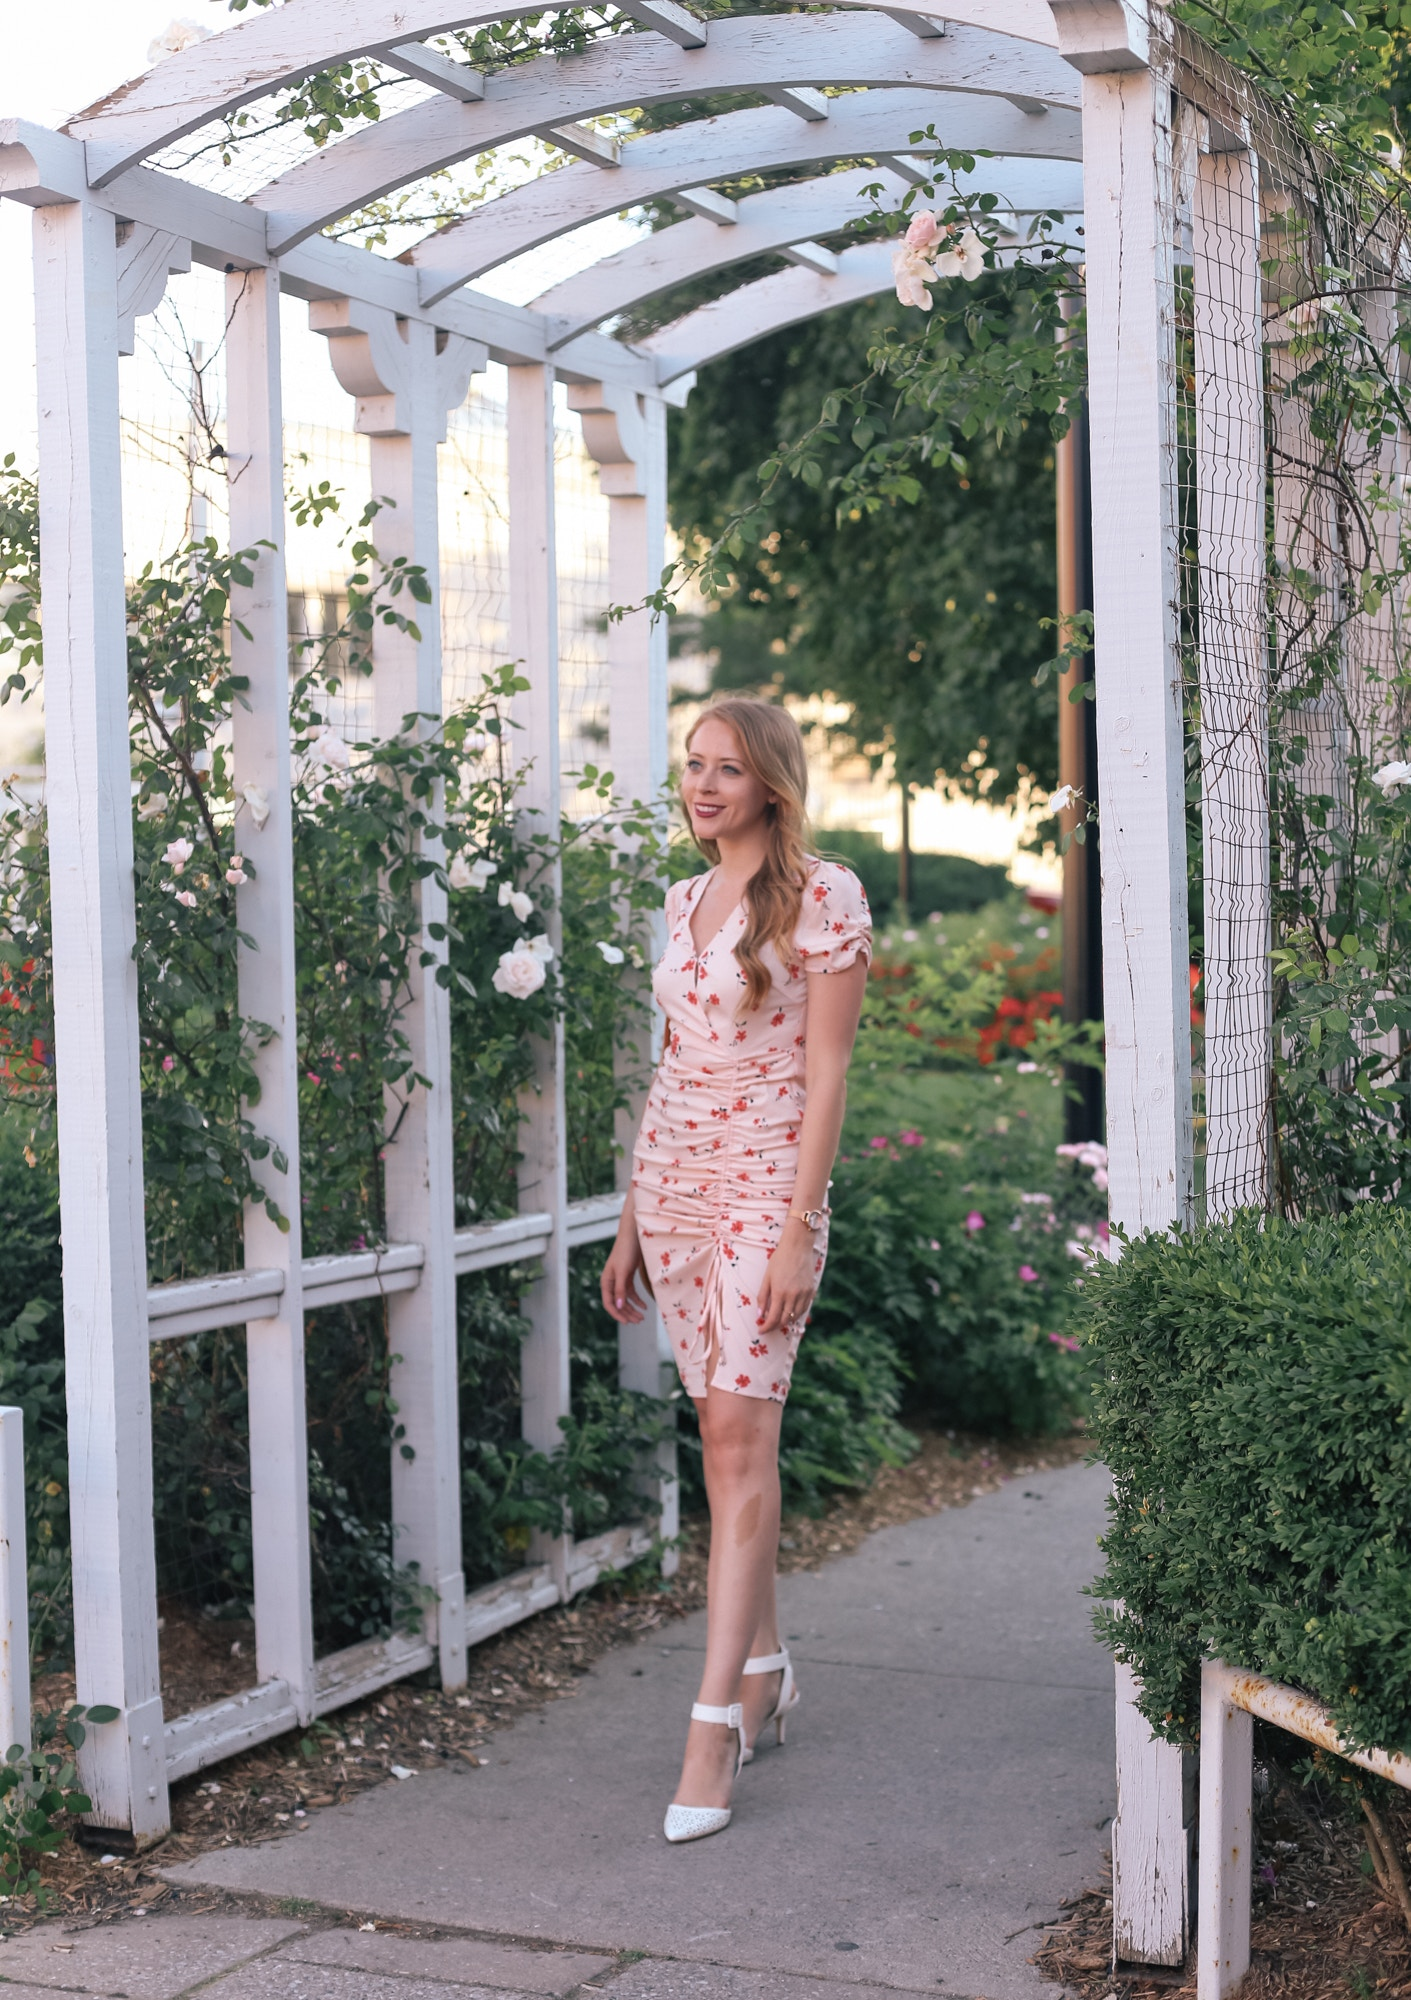 J.O.A. Cinch Front Dress : a dainty rose print dress for under $100.